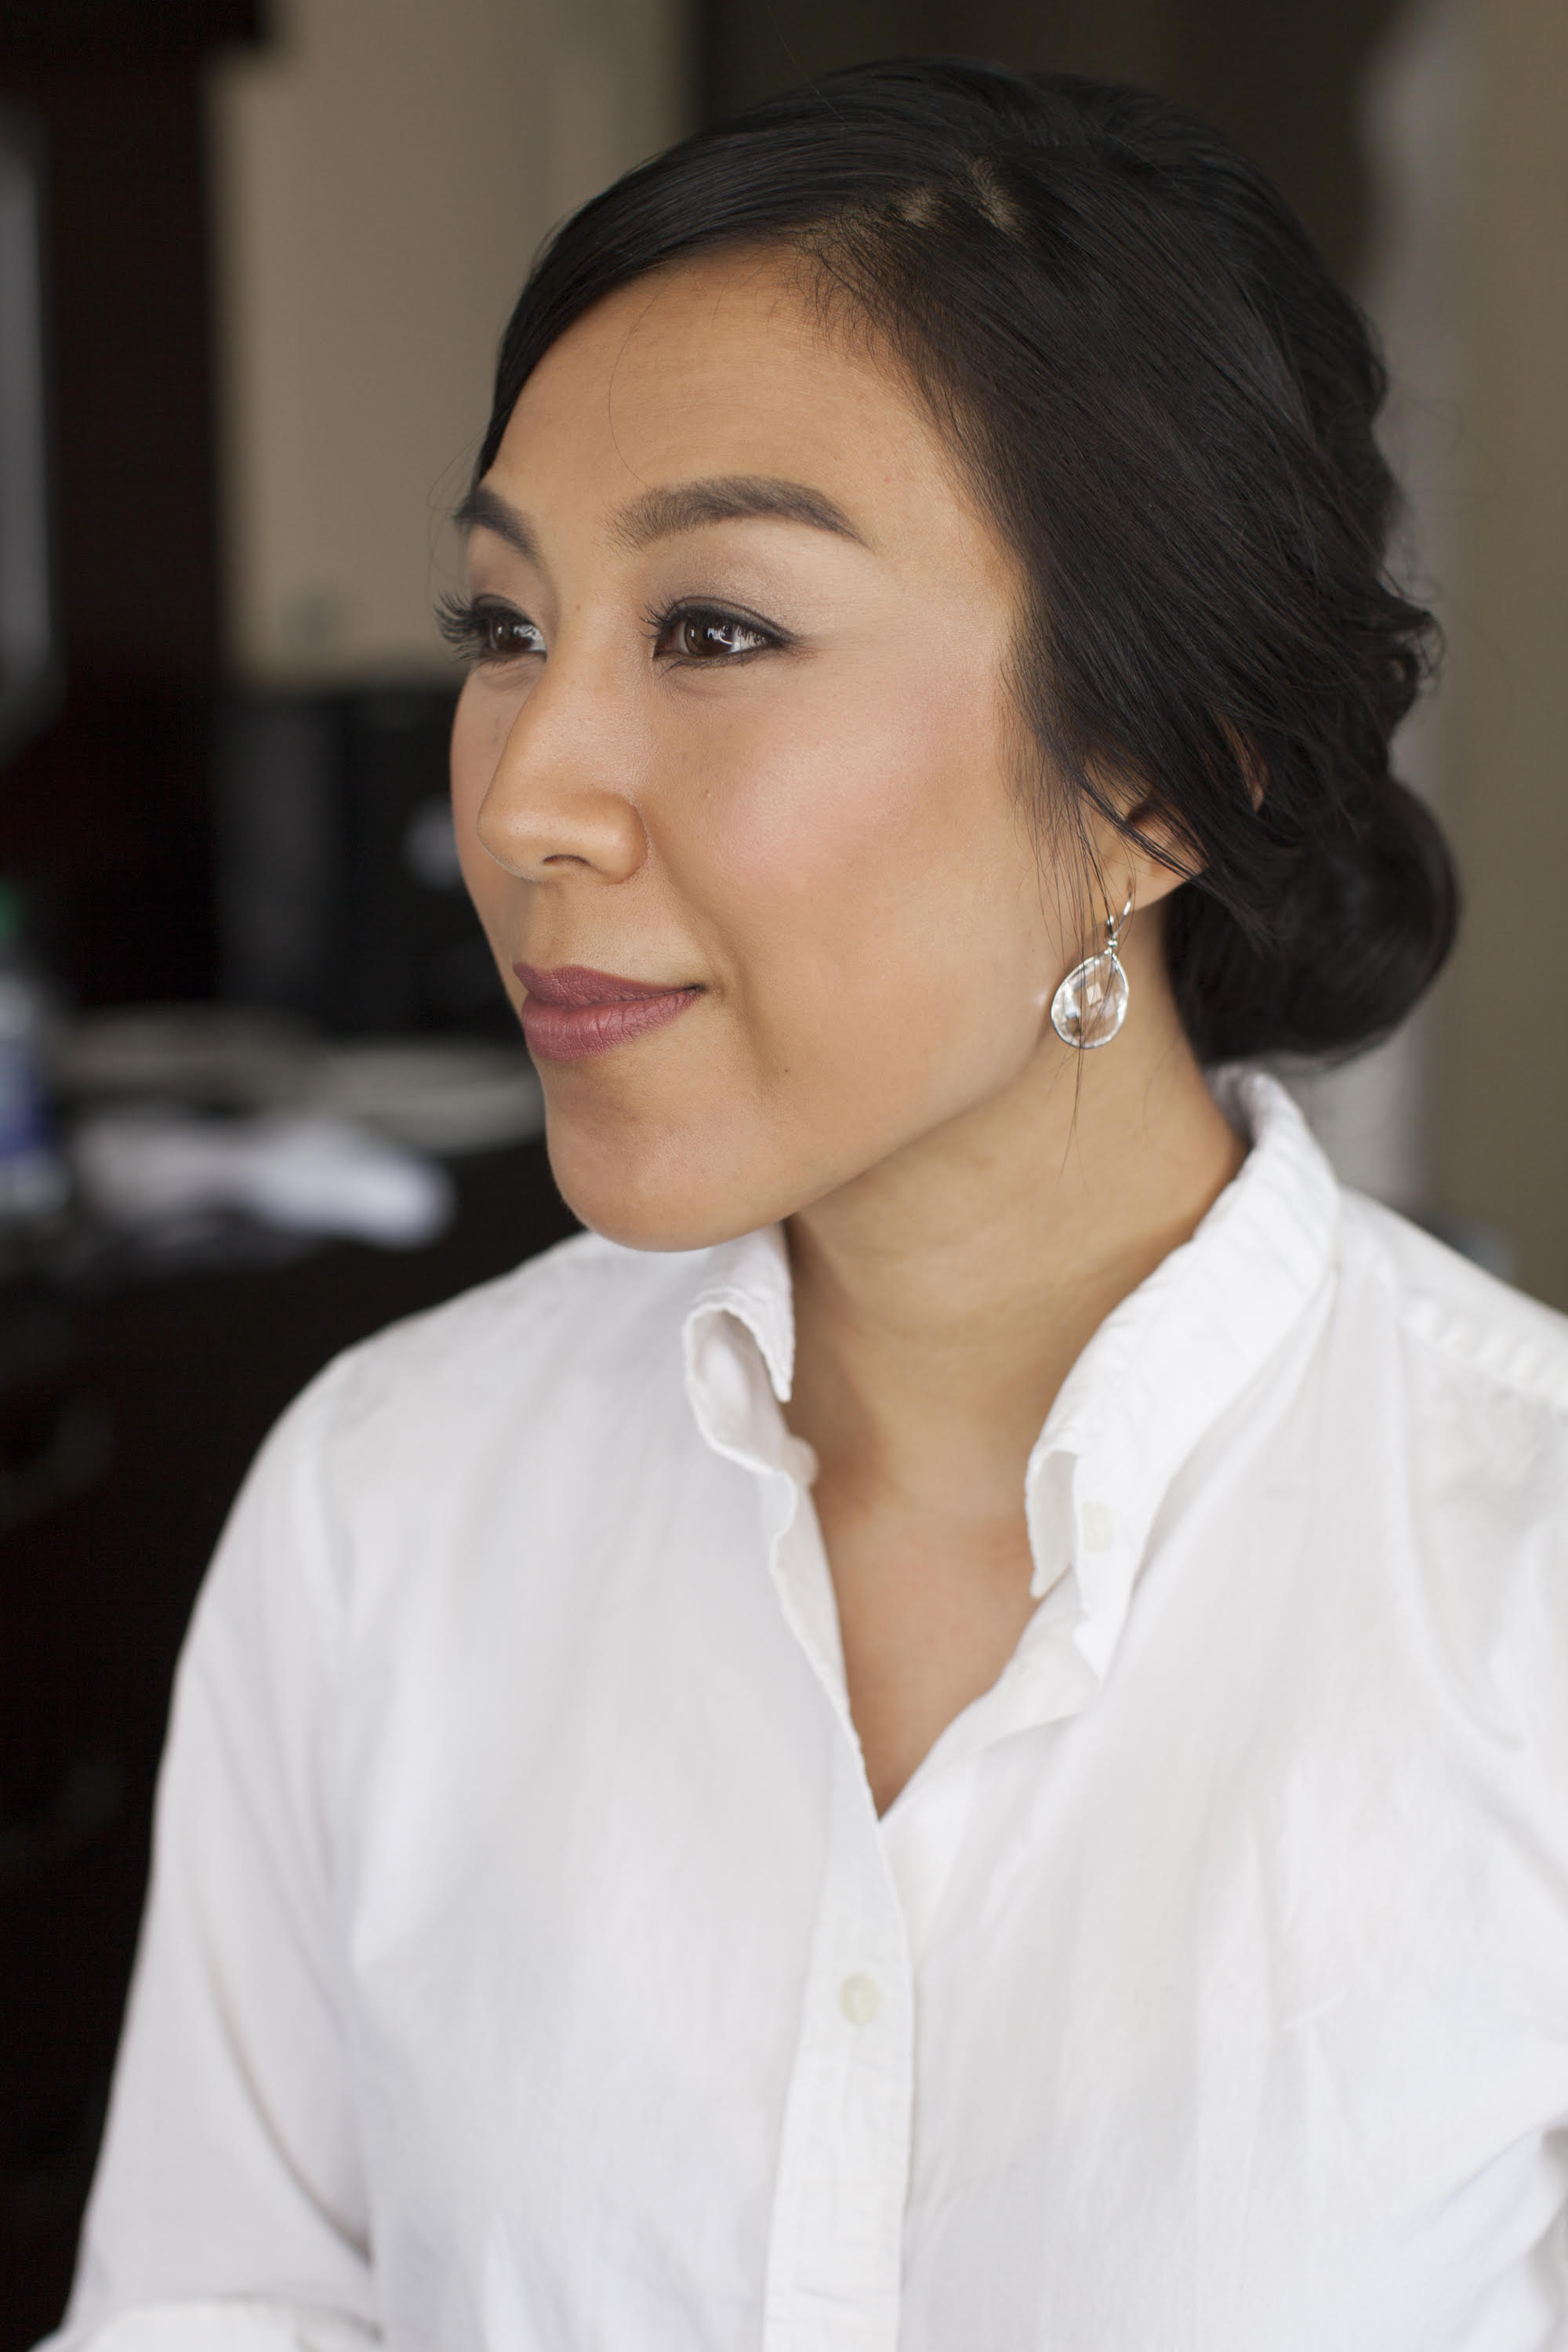 Hair and makeup by Judy Lim